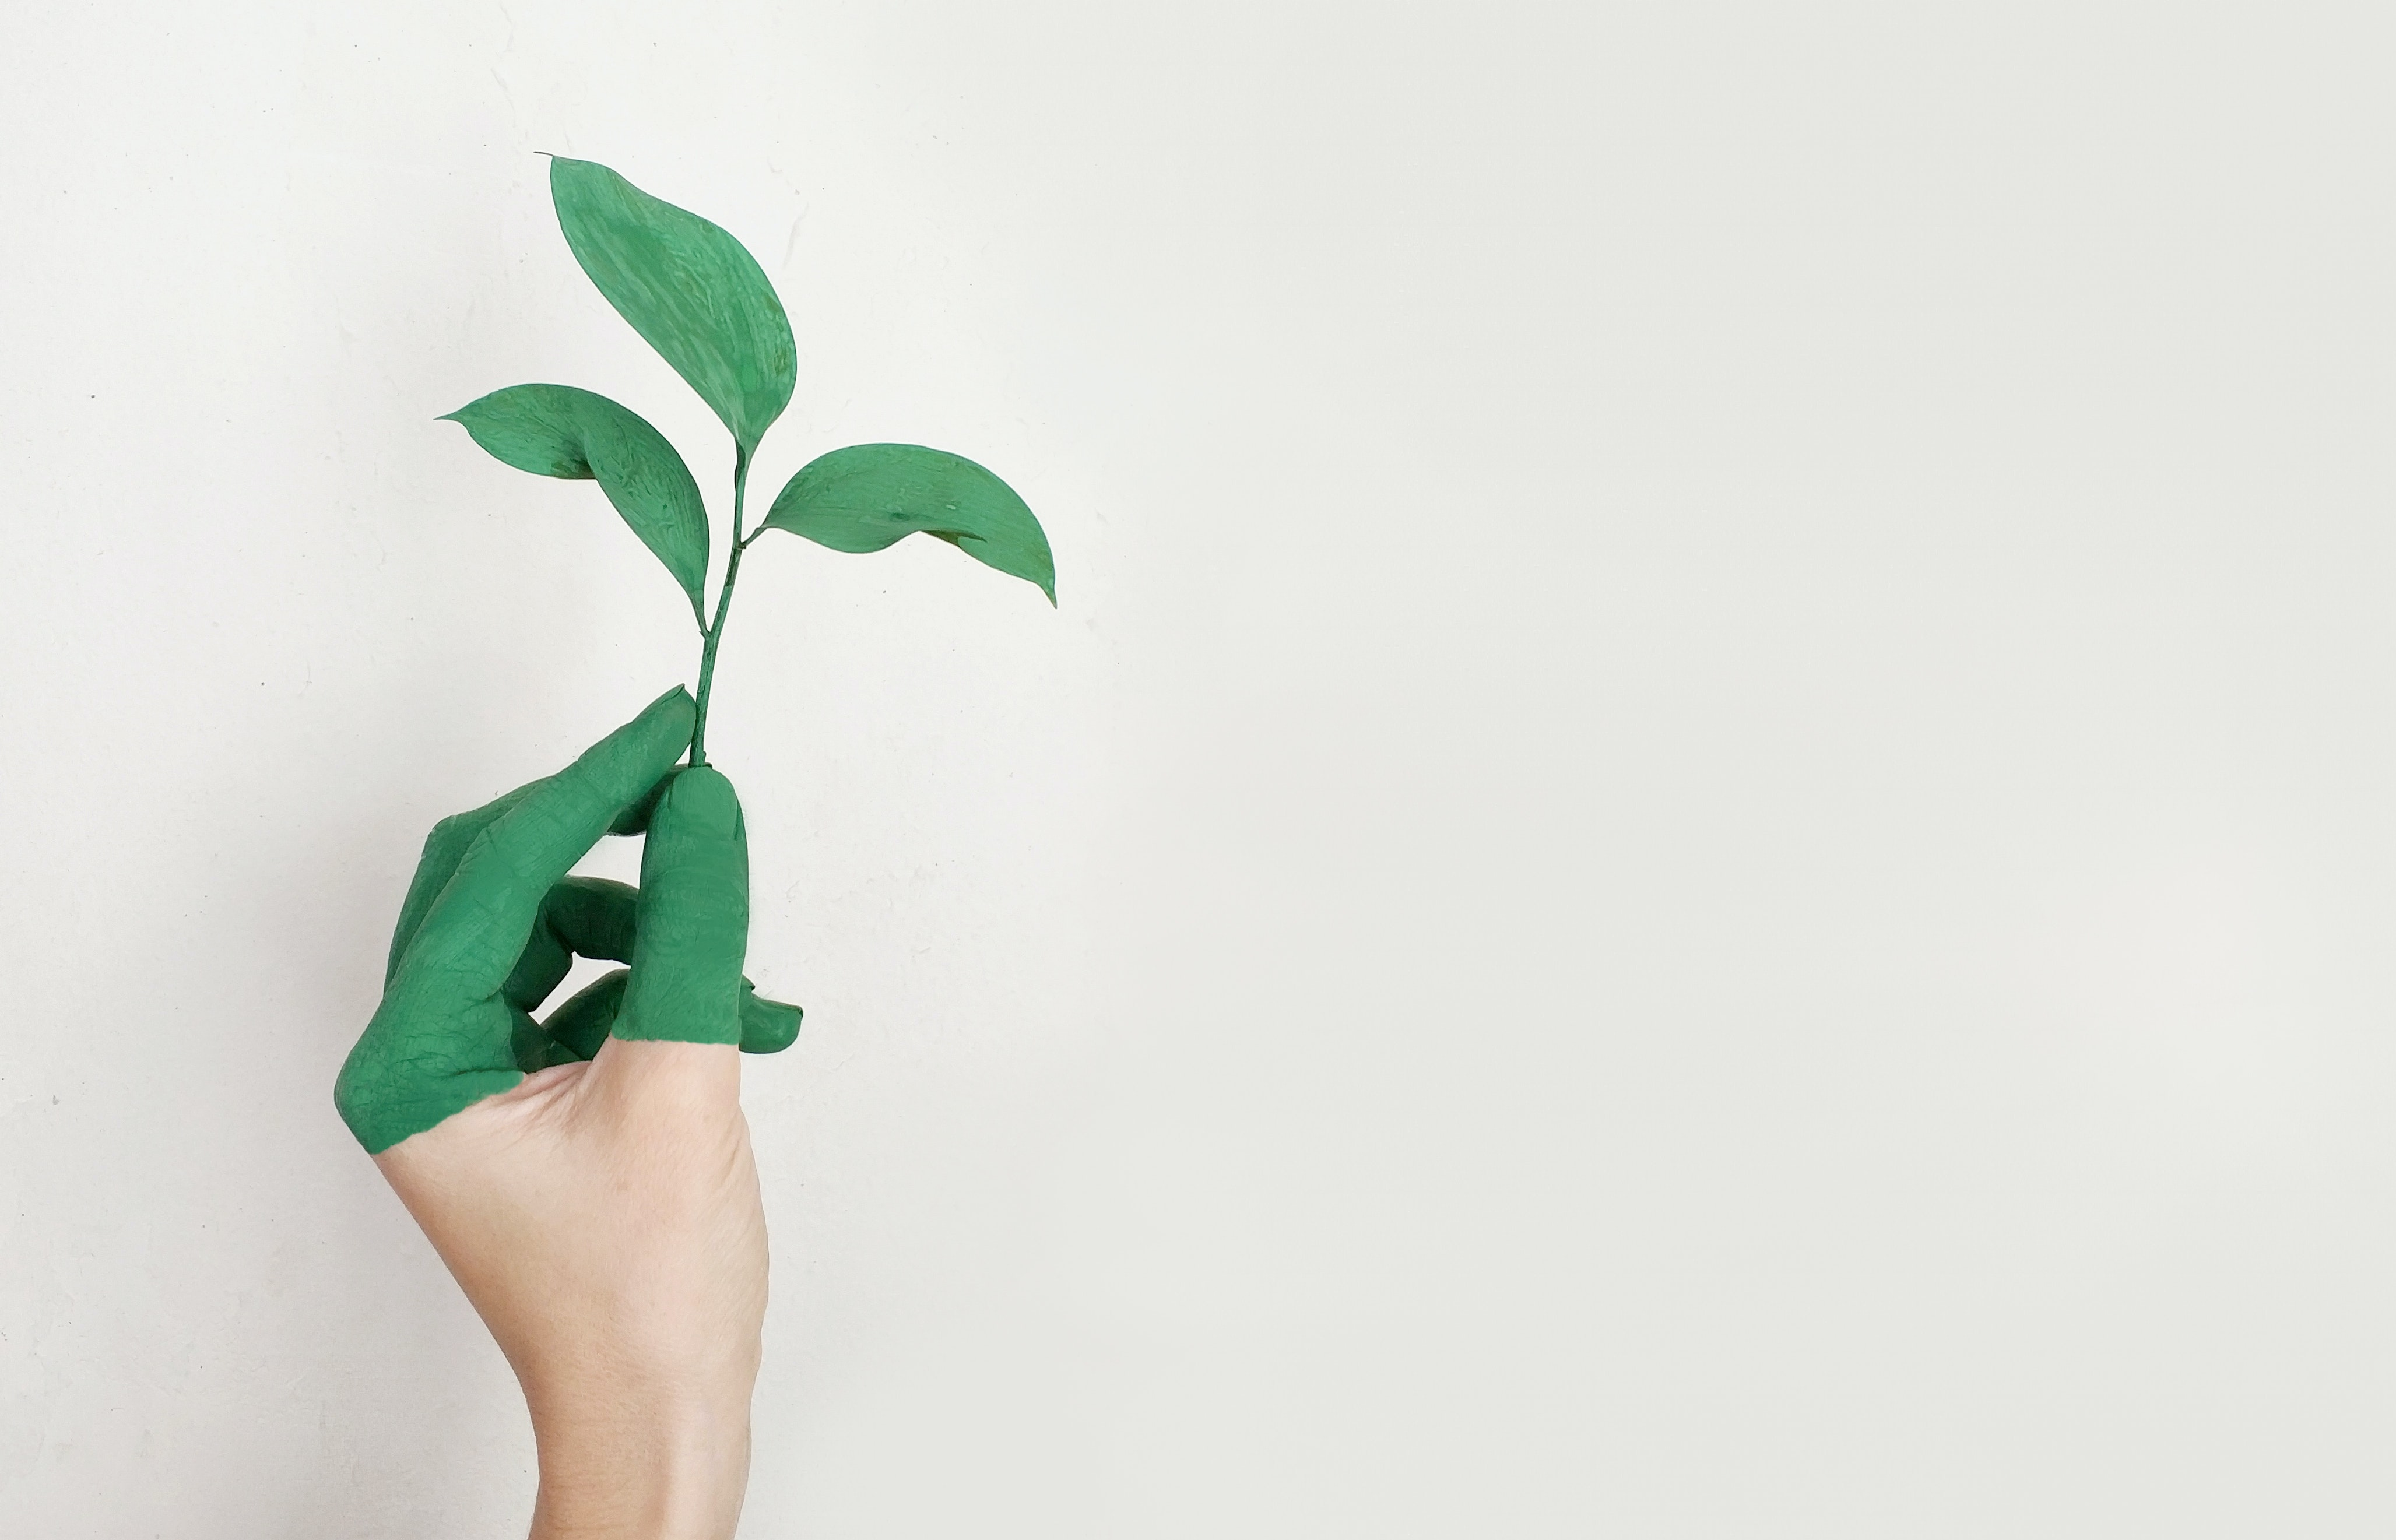 Reducing the Carbon Footprint of Your Marketing Practices